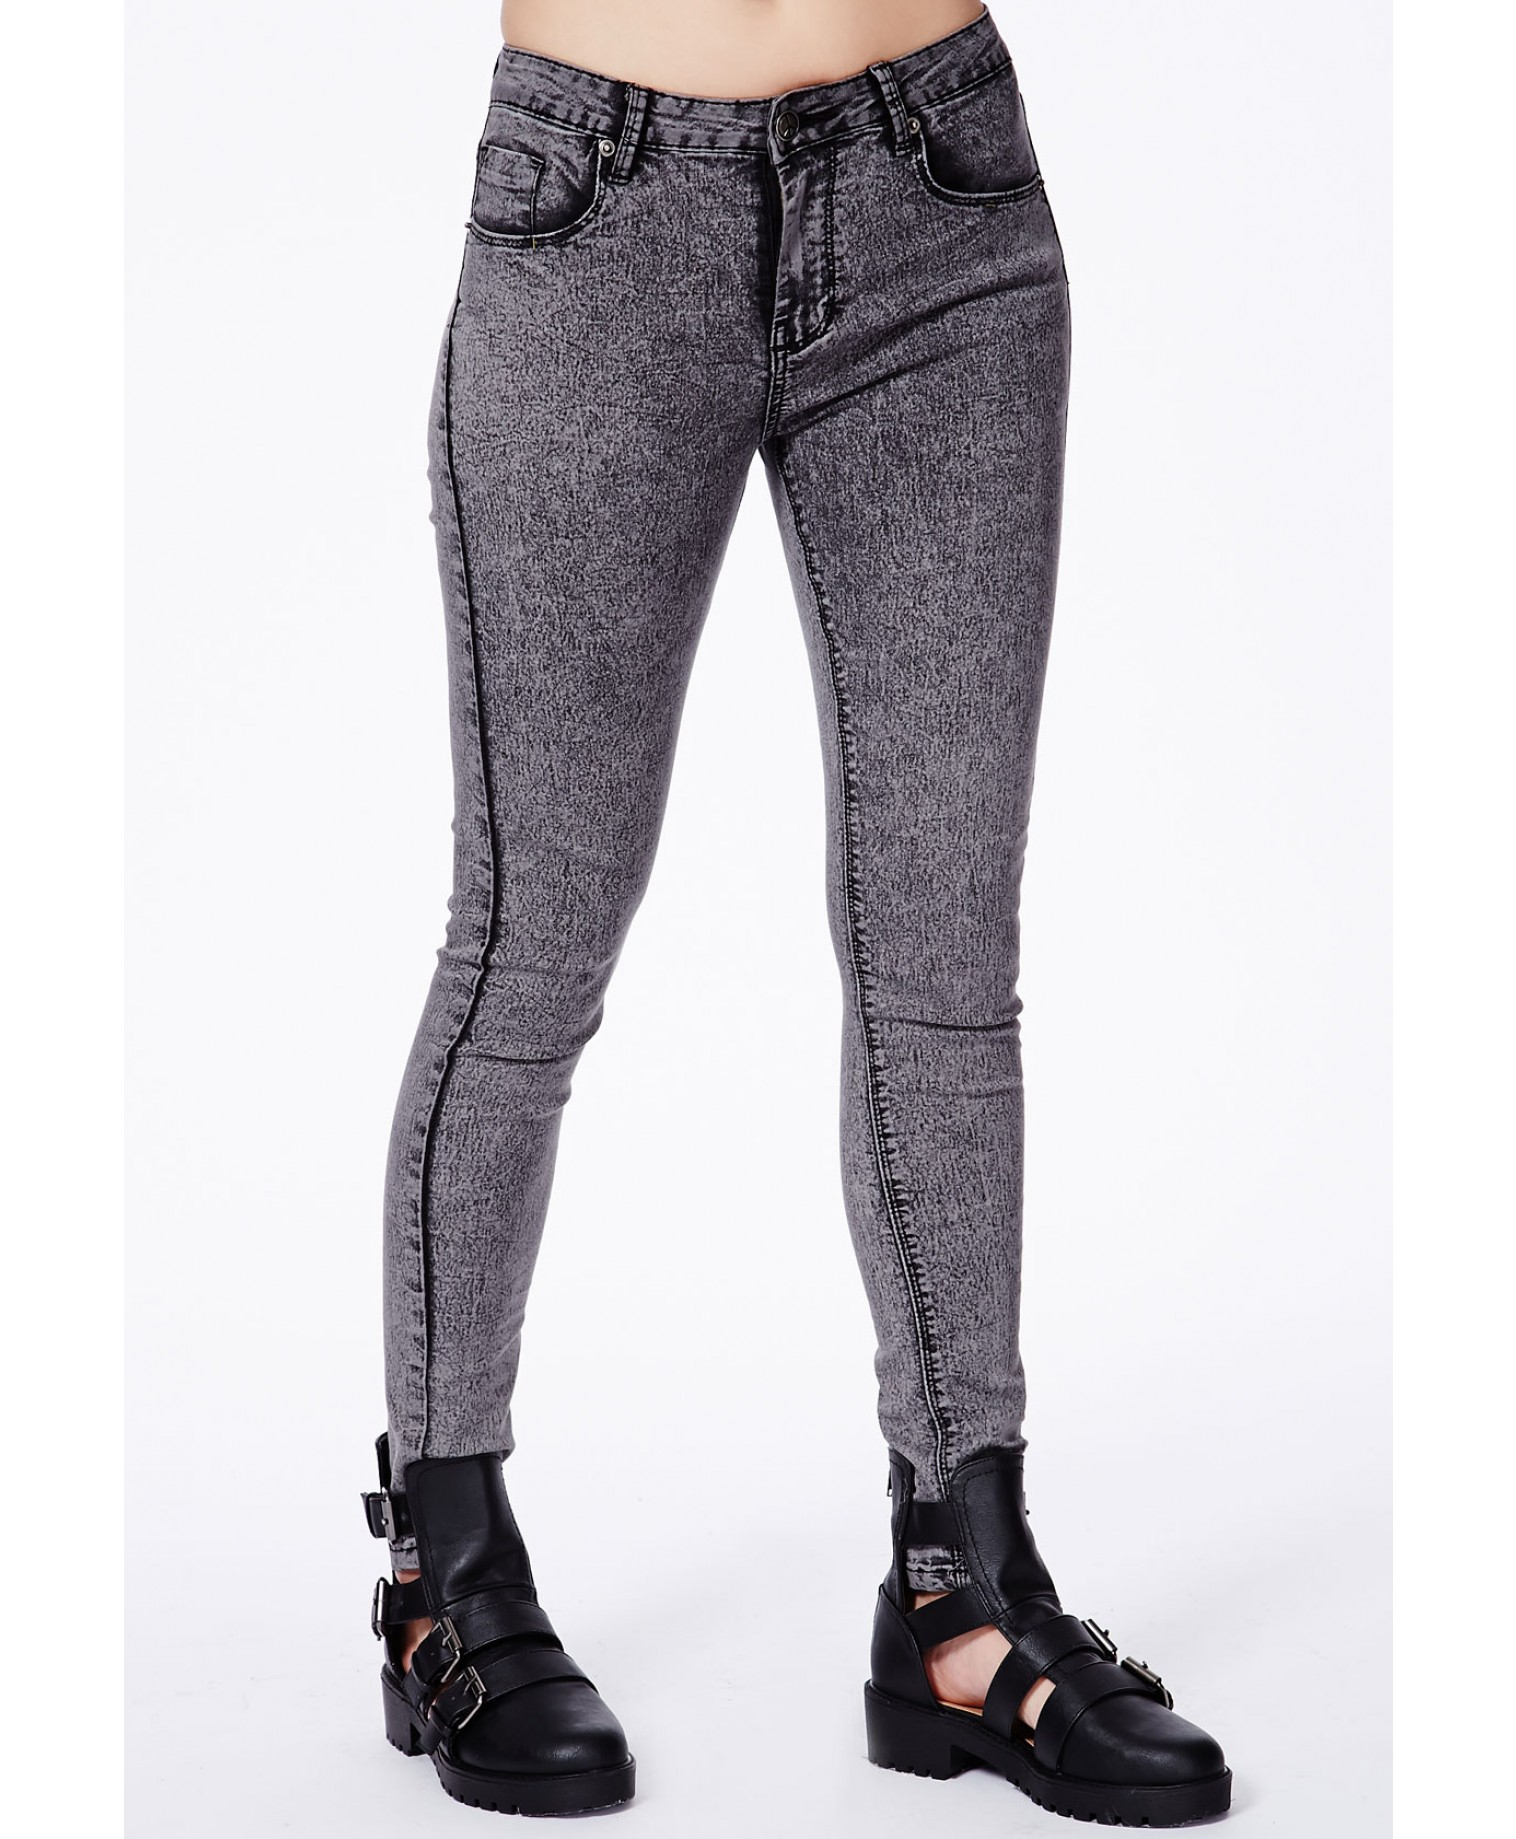 Women's Black Boho Skinny Jeans $70 $ 52 + $ shipping From Macy's Price last checked 12 hours ago Product prices and availability are accurate as of Price: $